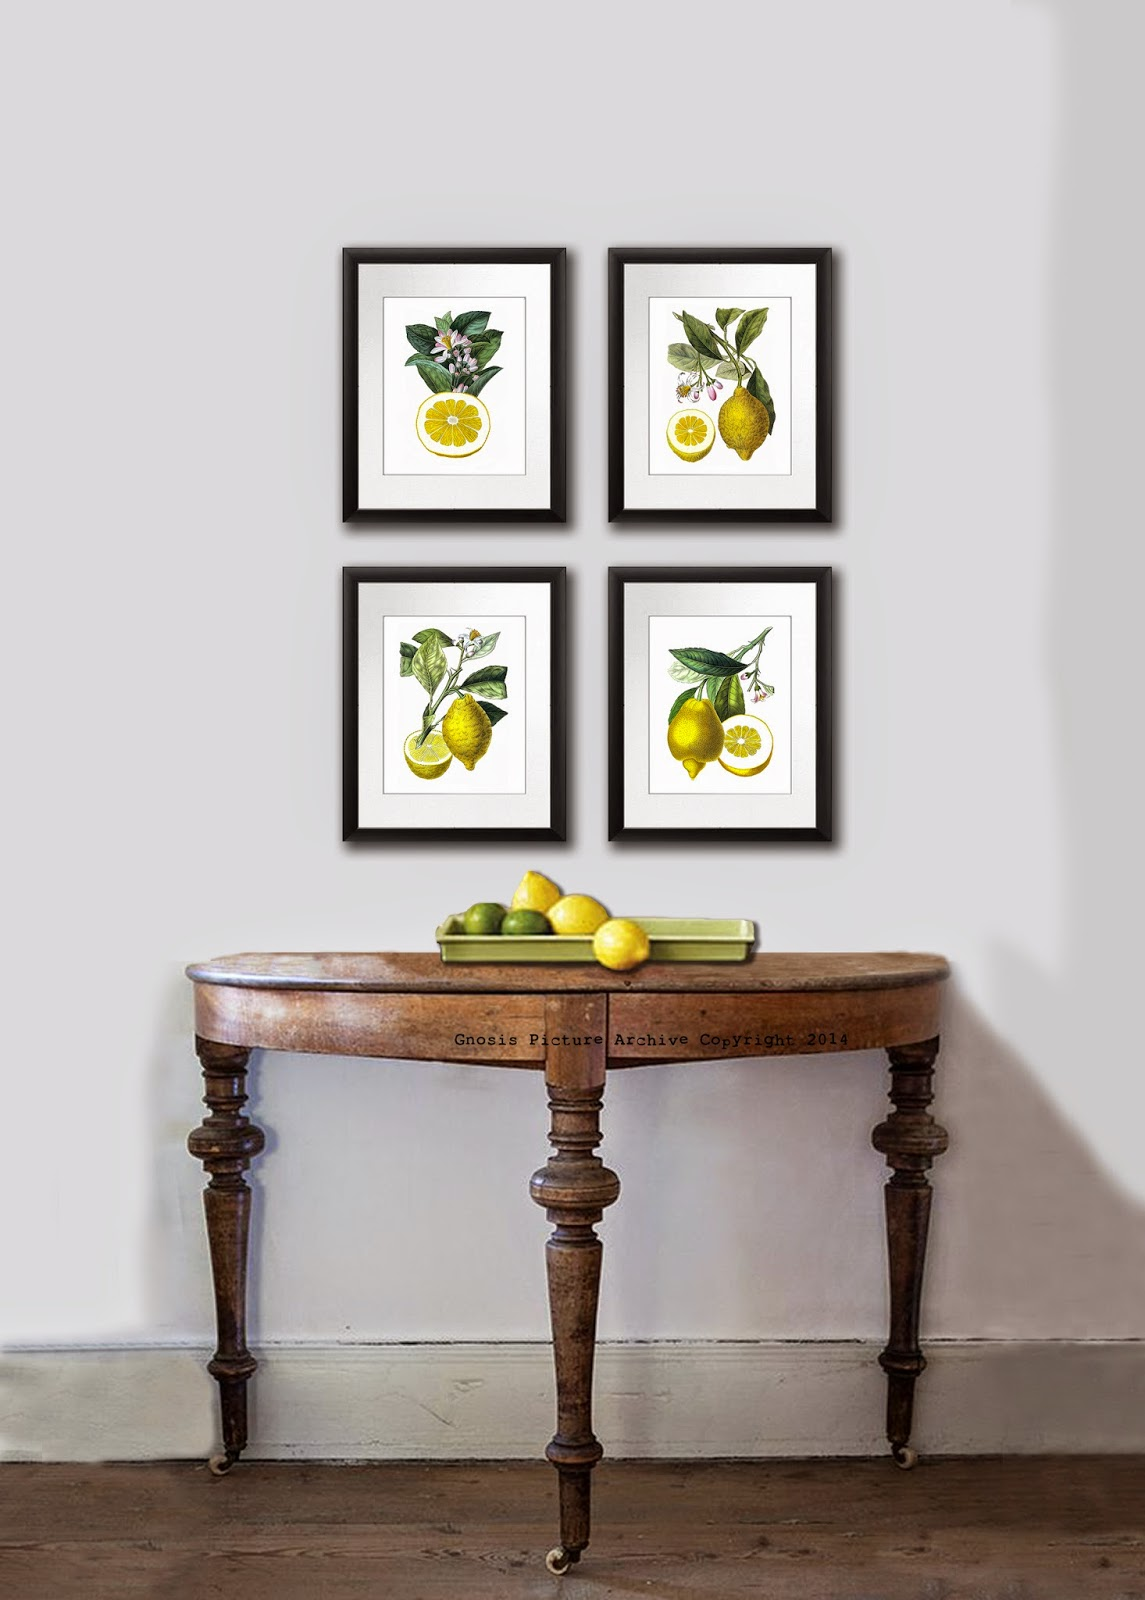 Gnosis Picture Archive Blog Botanical Wall Art Home Decor